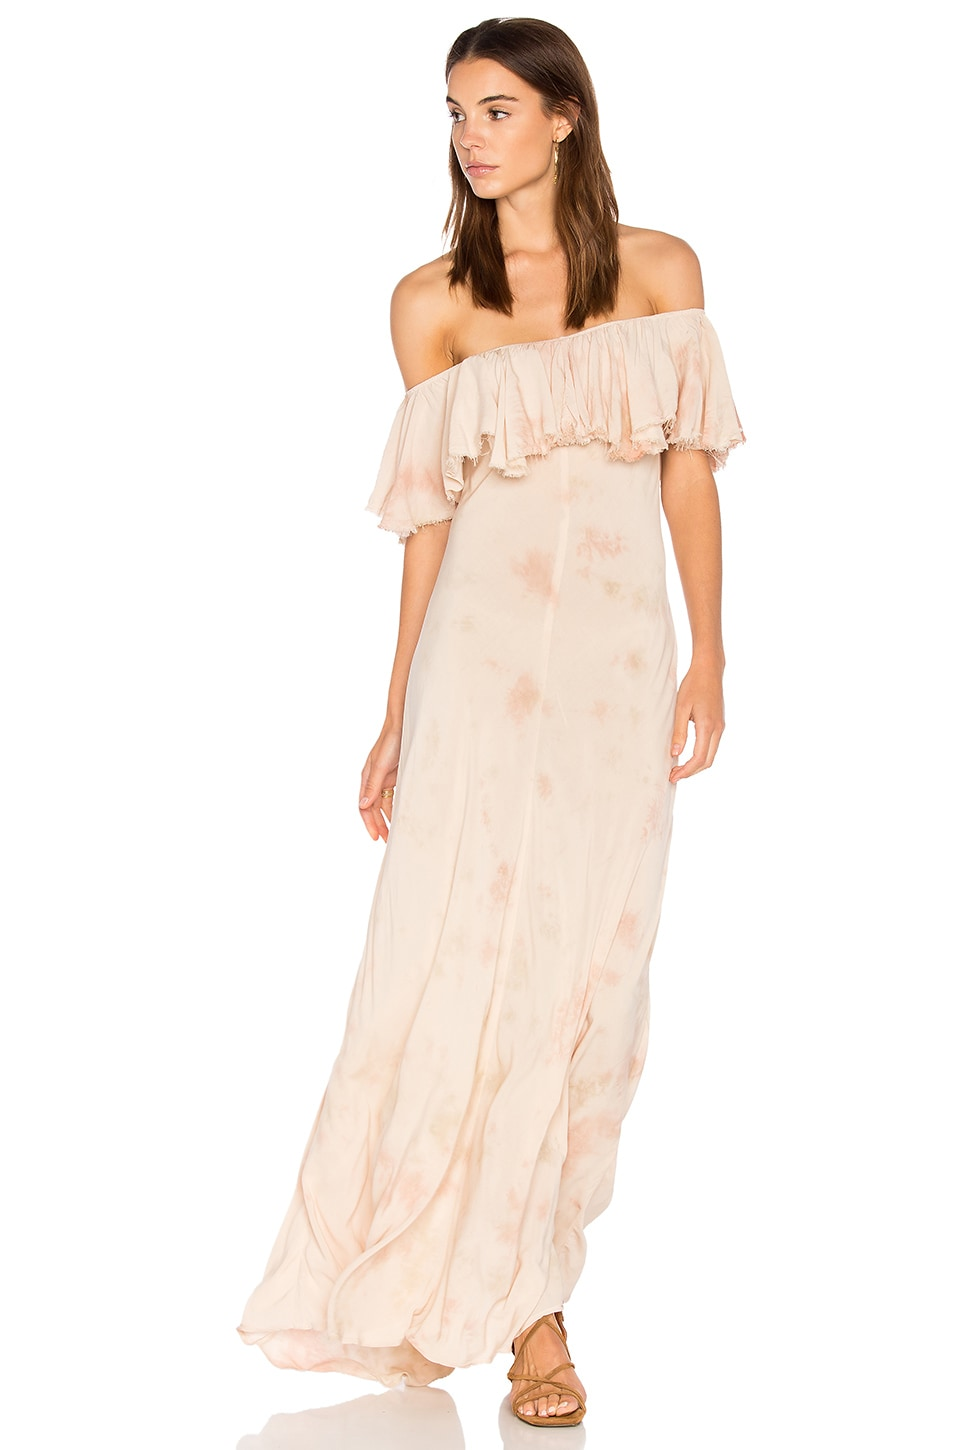 Aphrodite Maxi Dress by Blue Life